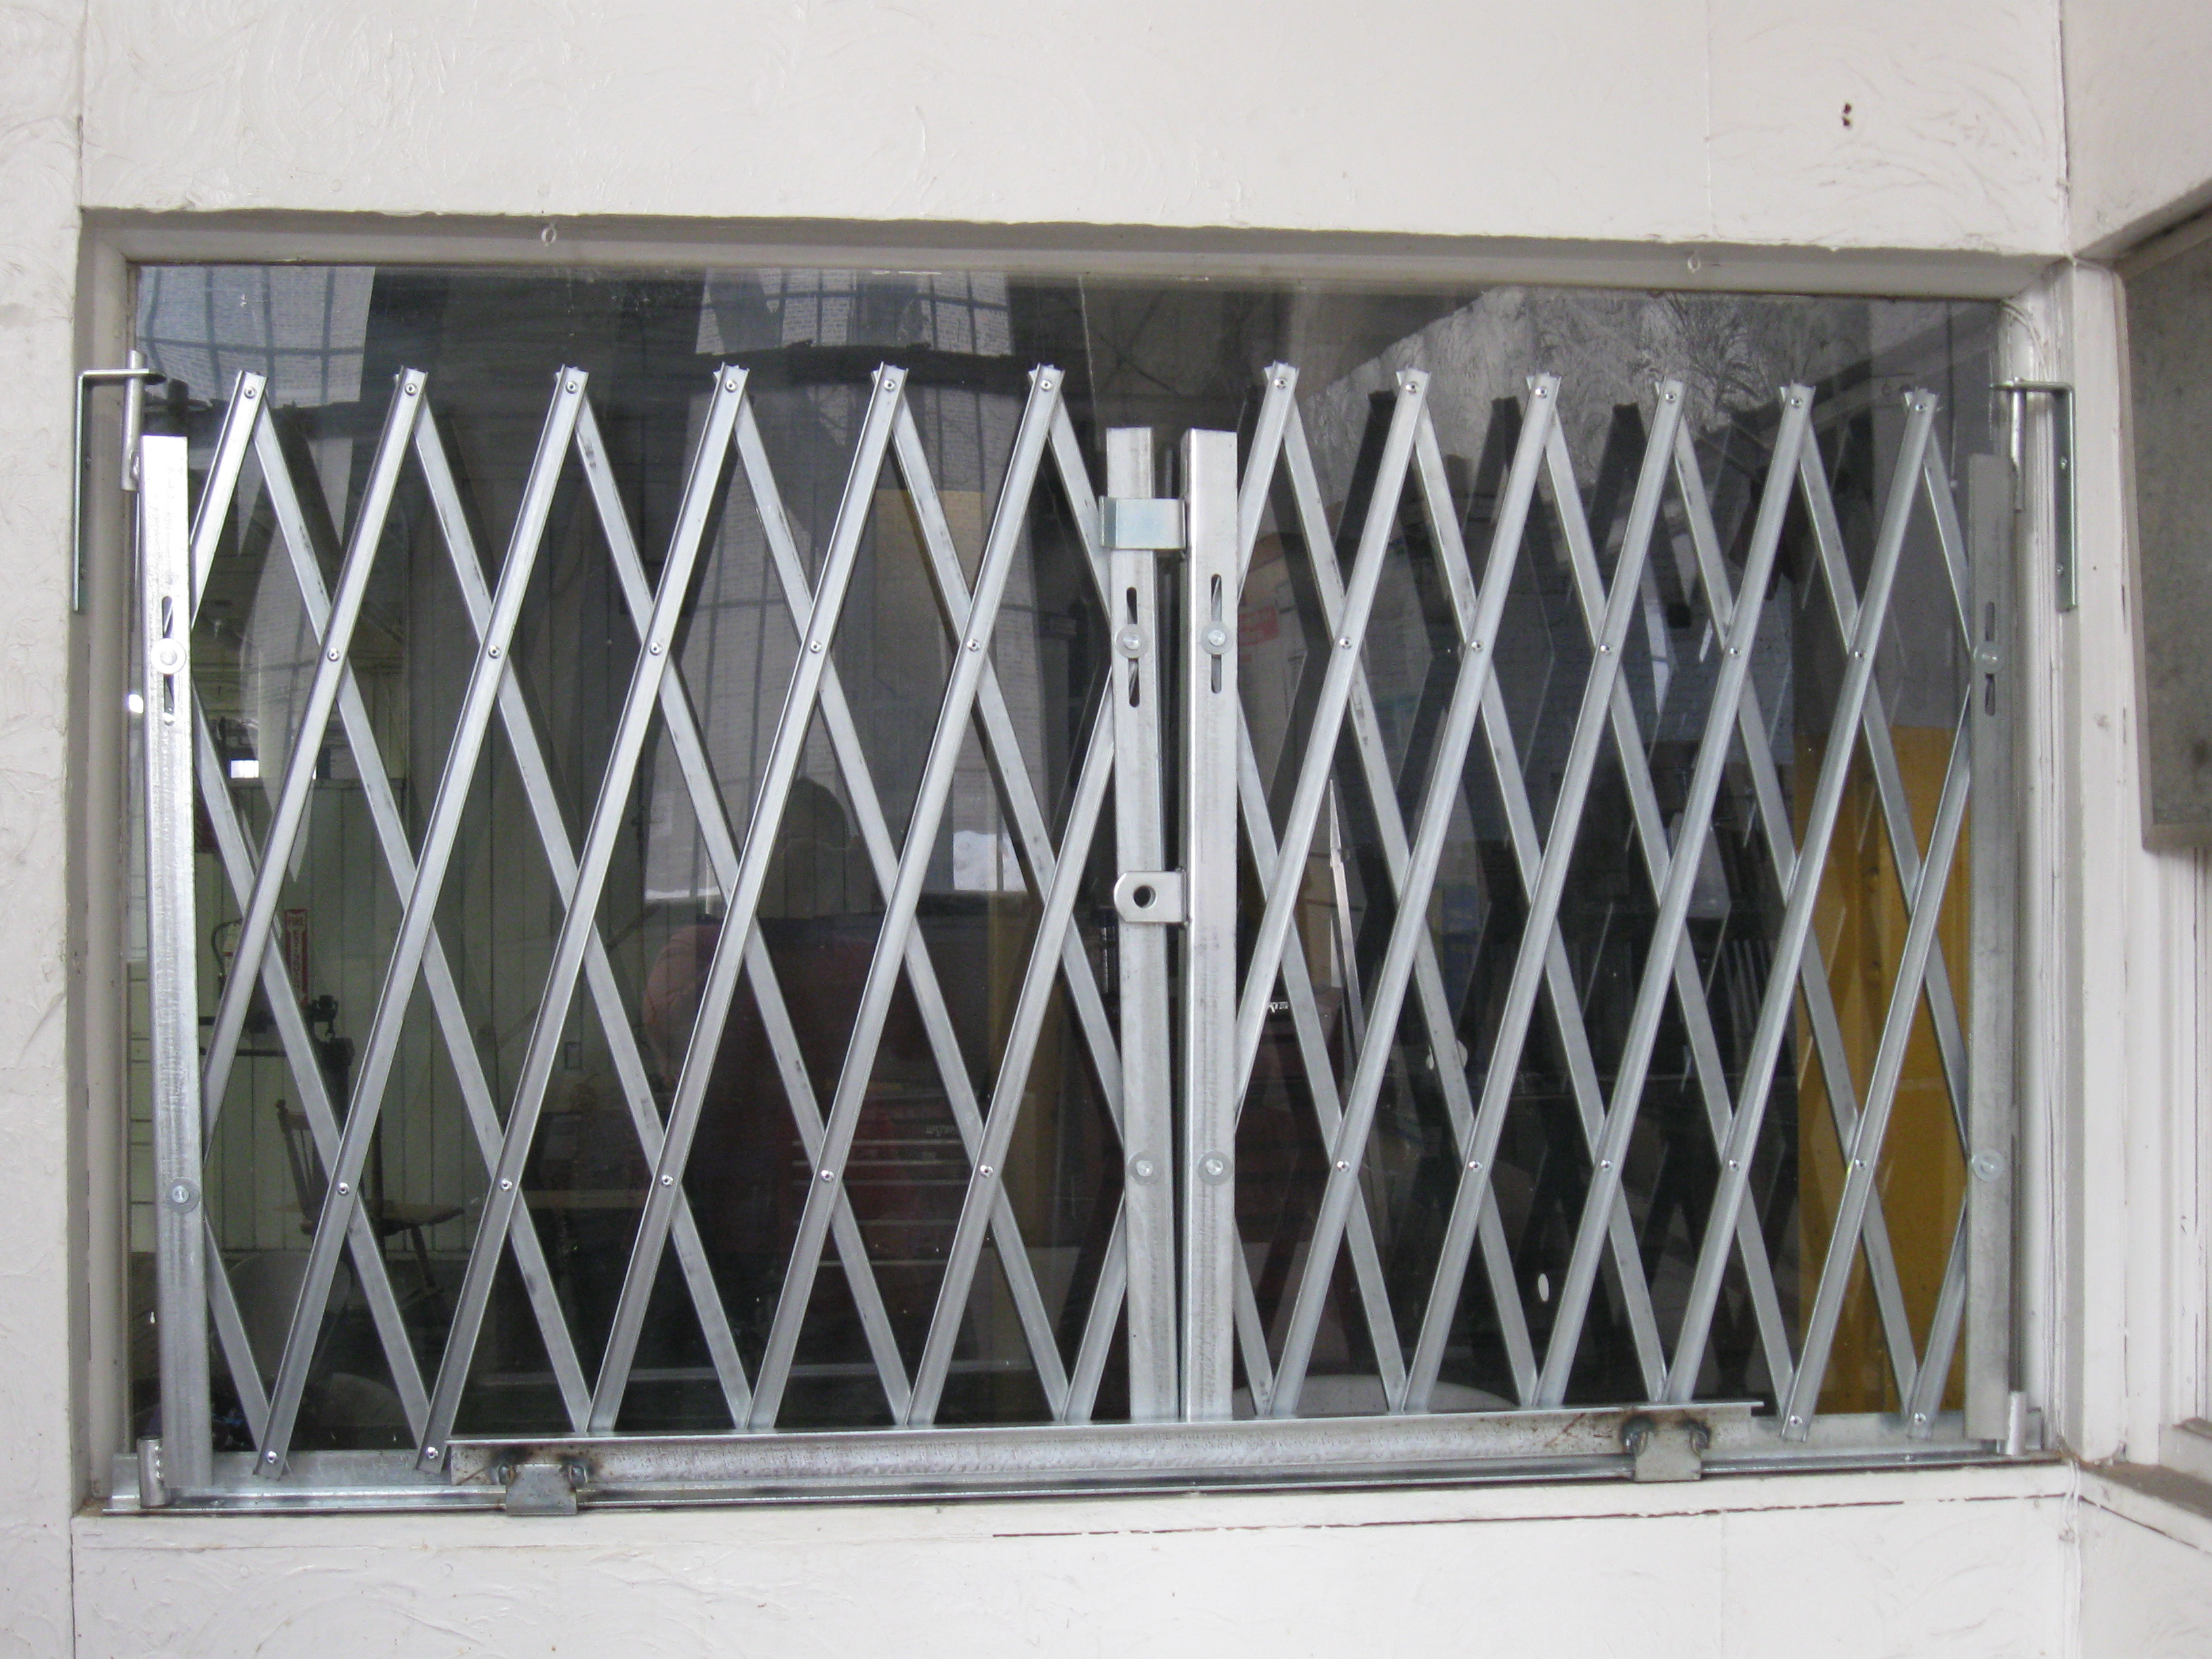 Window Security Gates Illinois Engineered Products